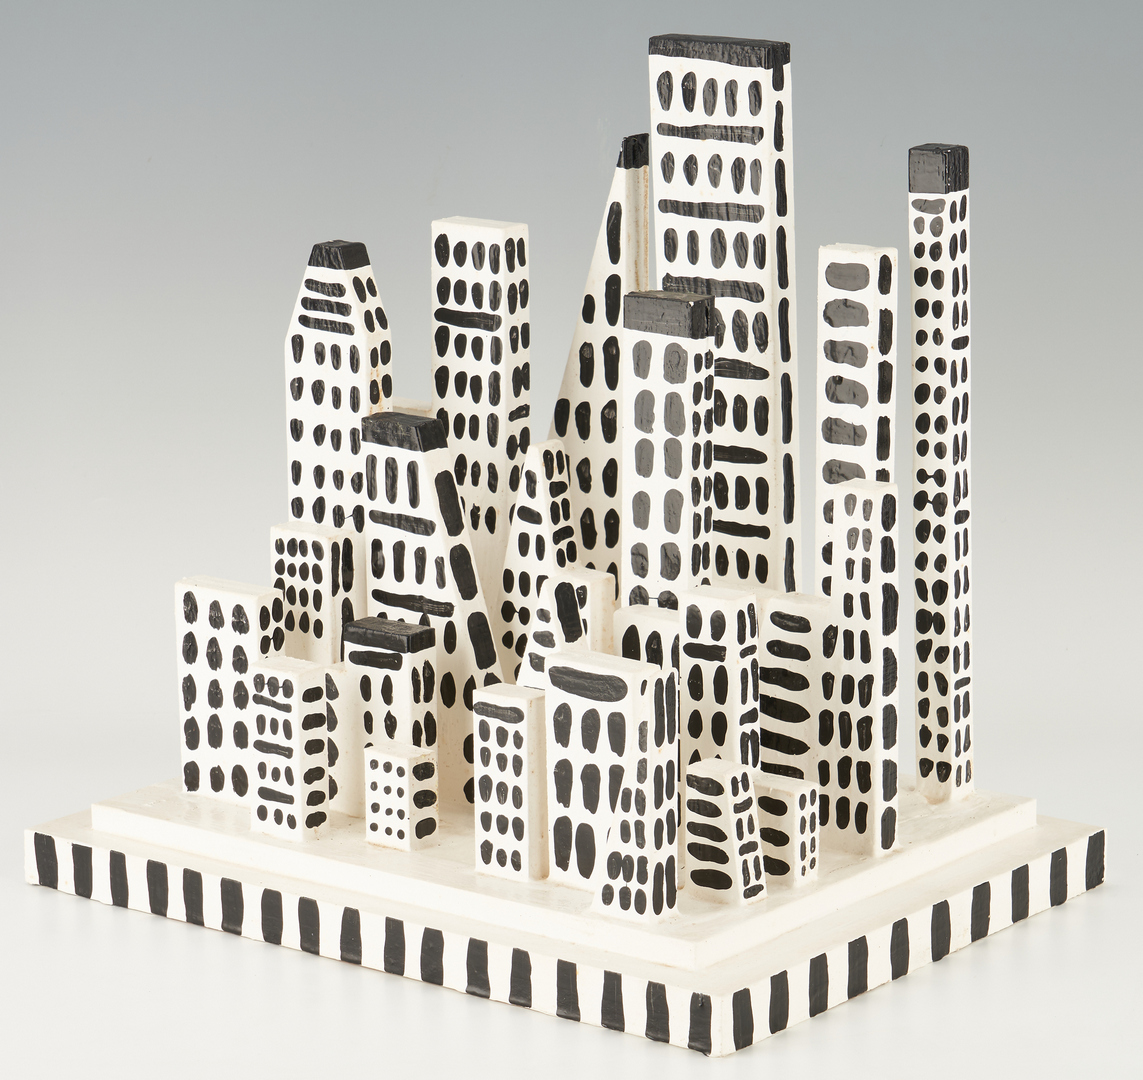 Lot 881: Myles Maillie Sculpture of a City